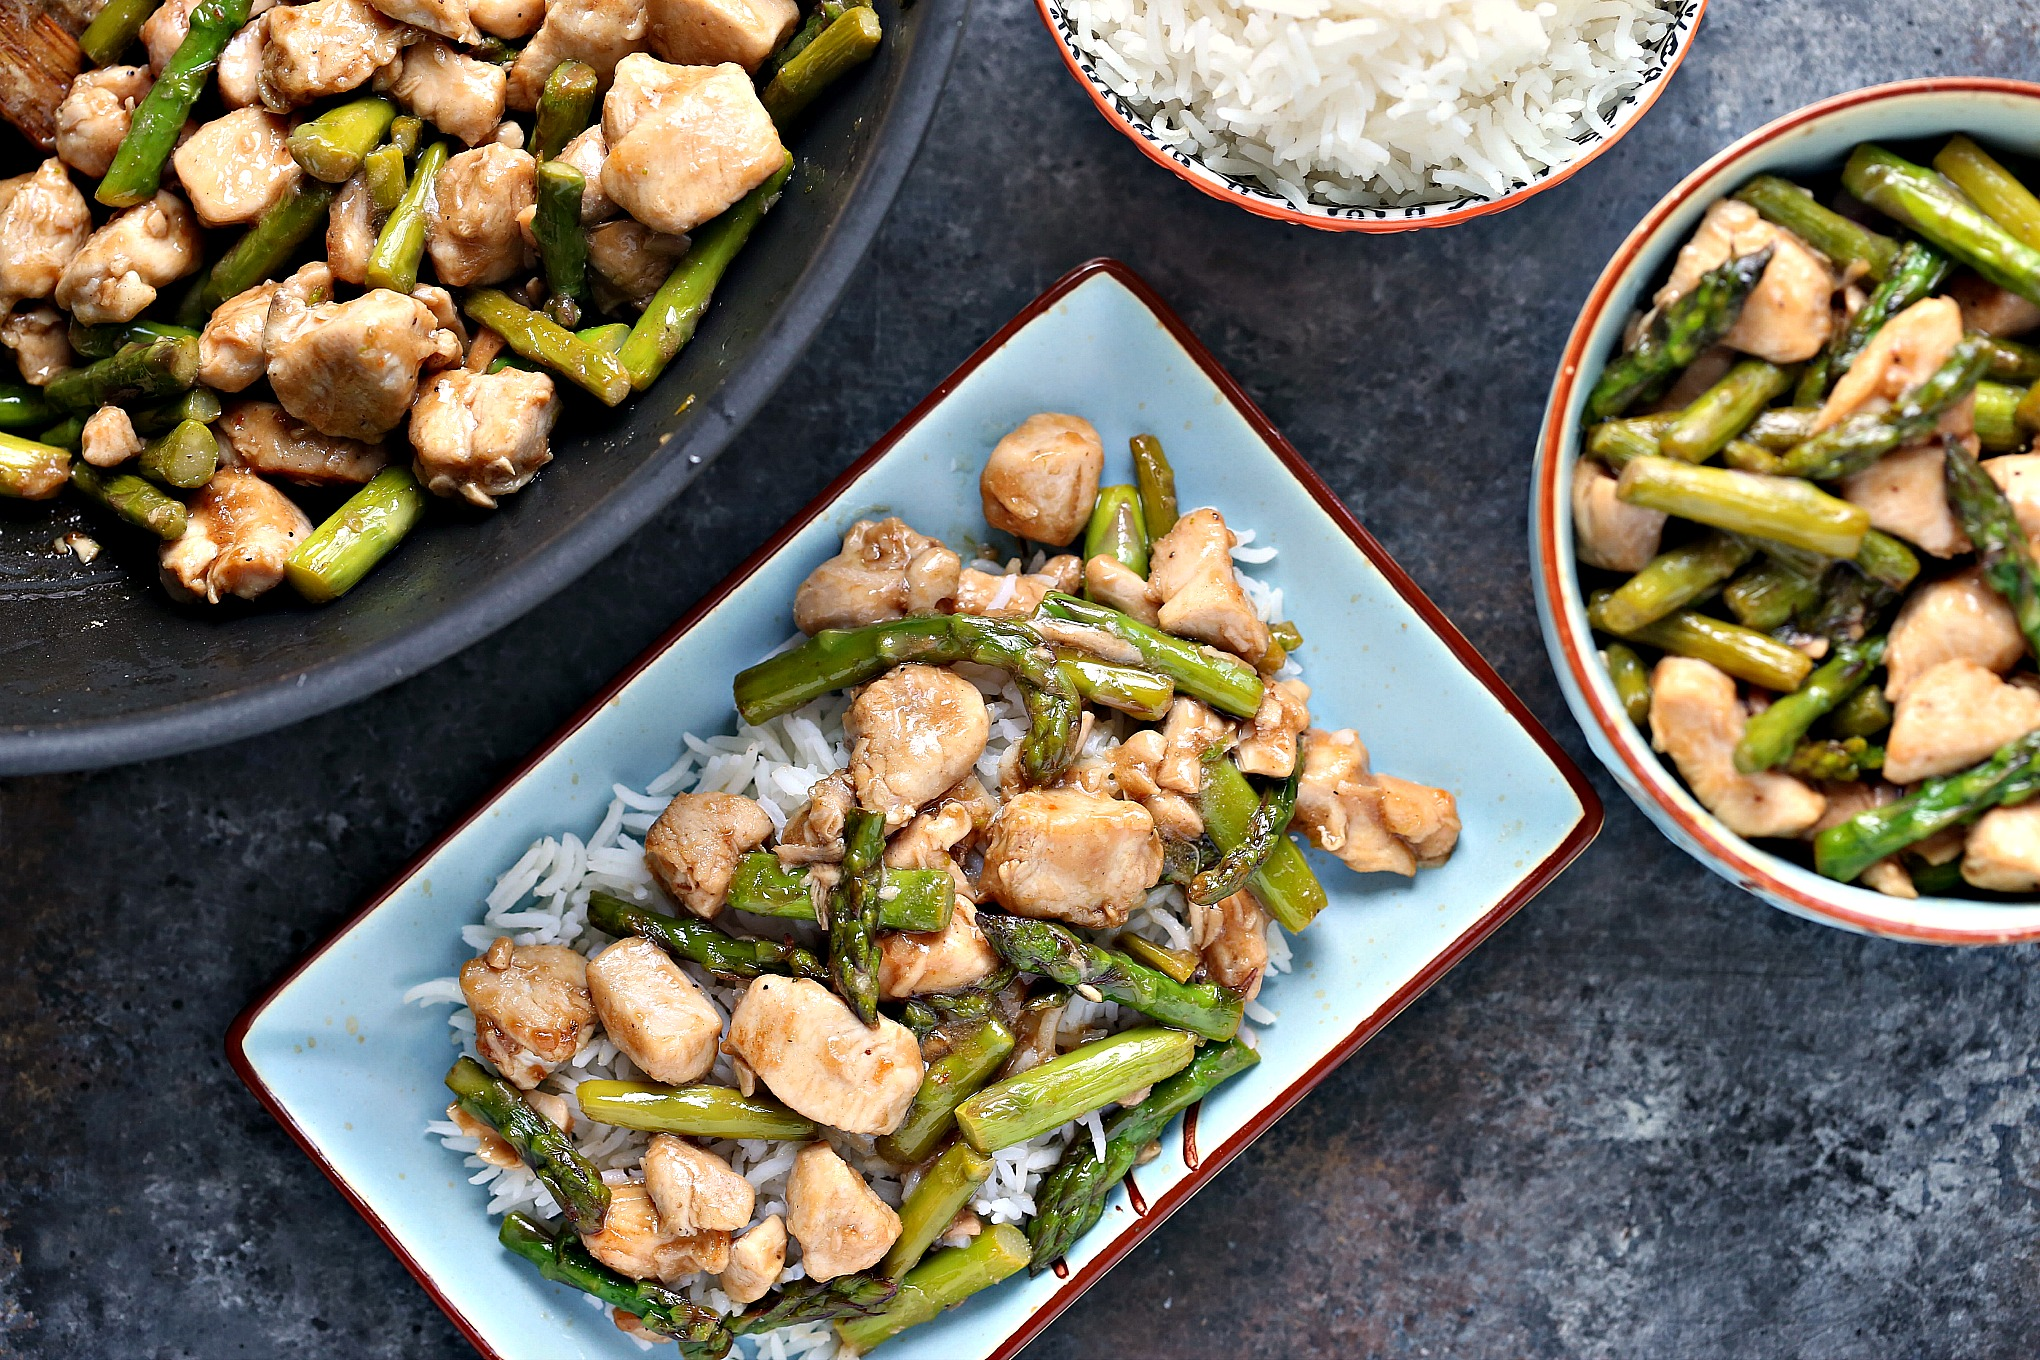 This quick and easy recipe for Chicken and Asparagus Stir-Fry with Lemon is a flavour explosion. Simple ingredients cooked in one pan. No muss, no fuss.